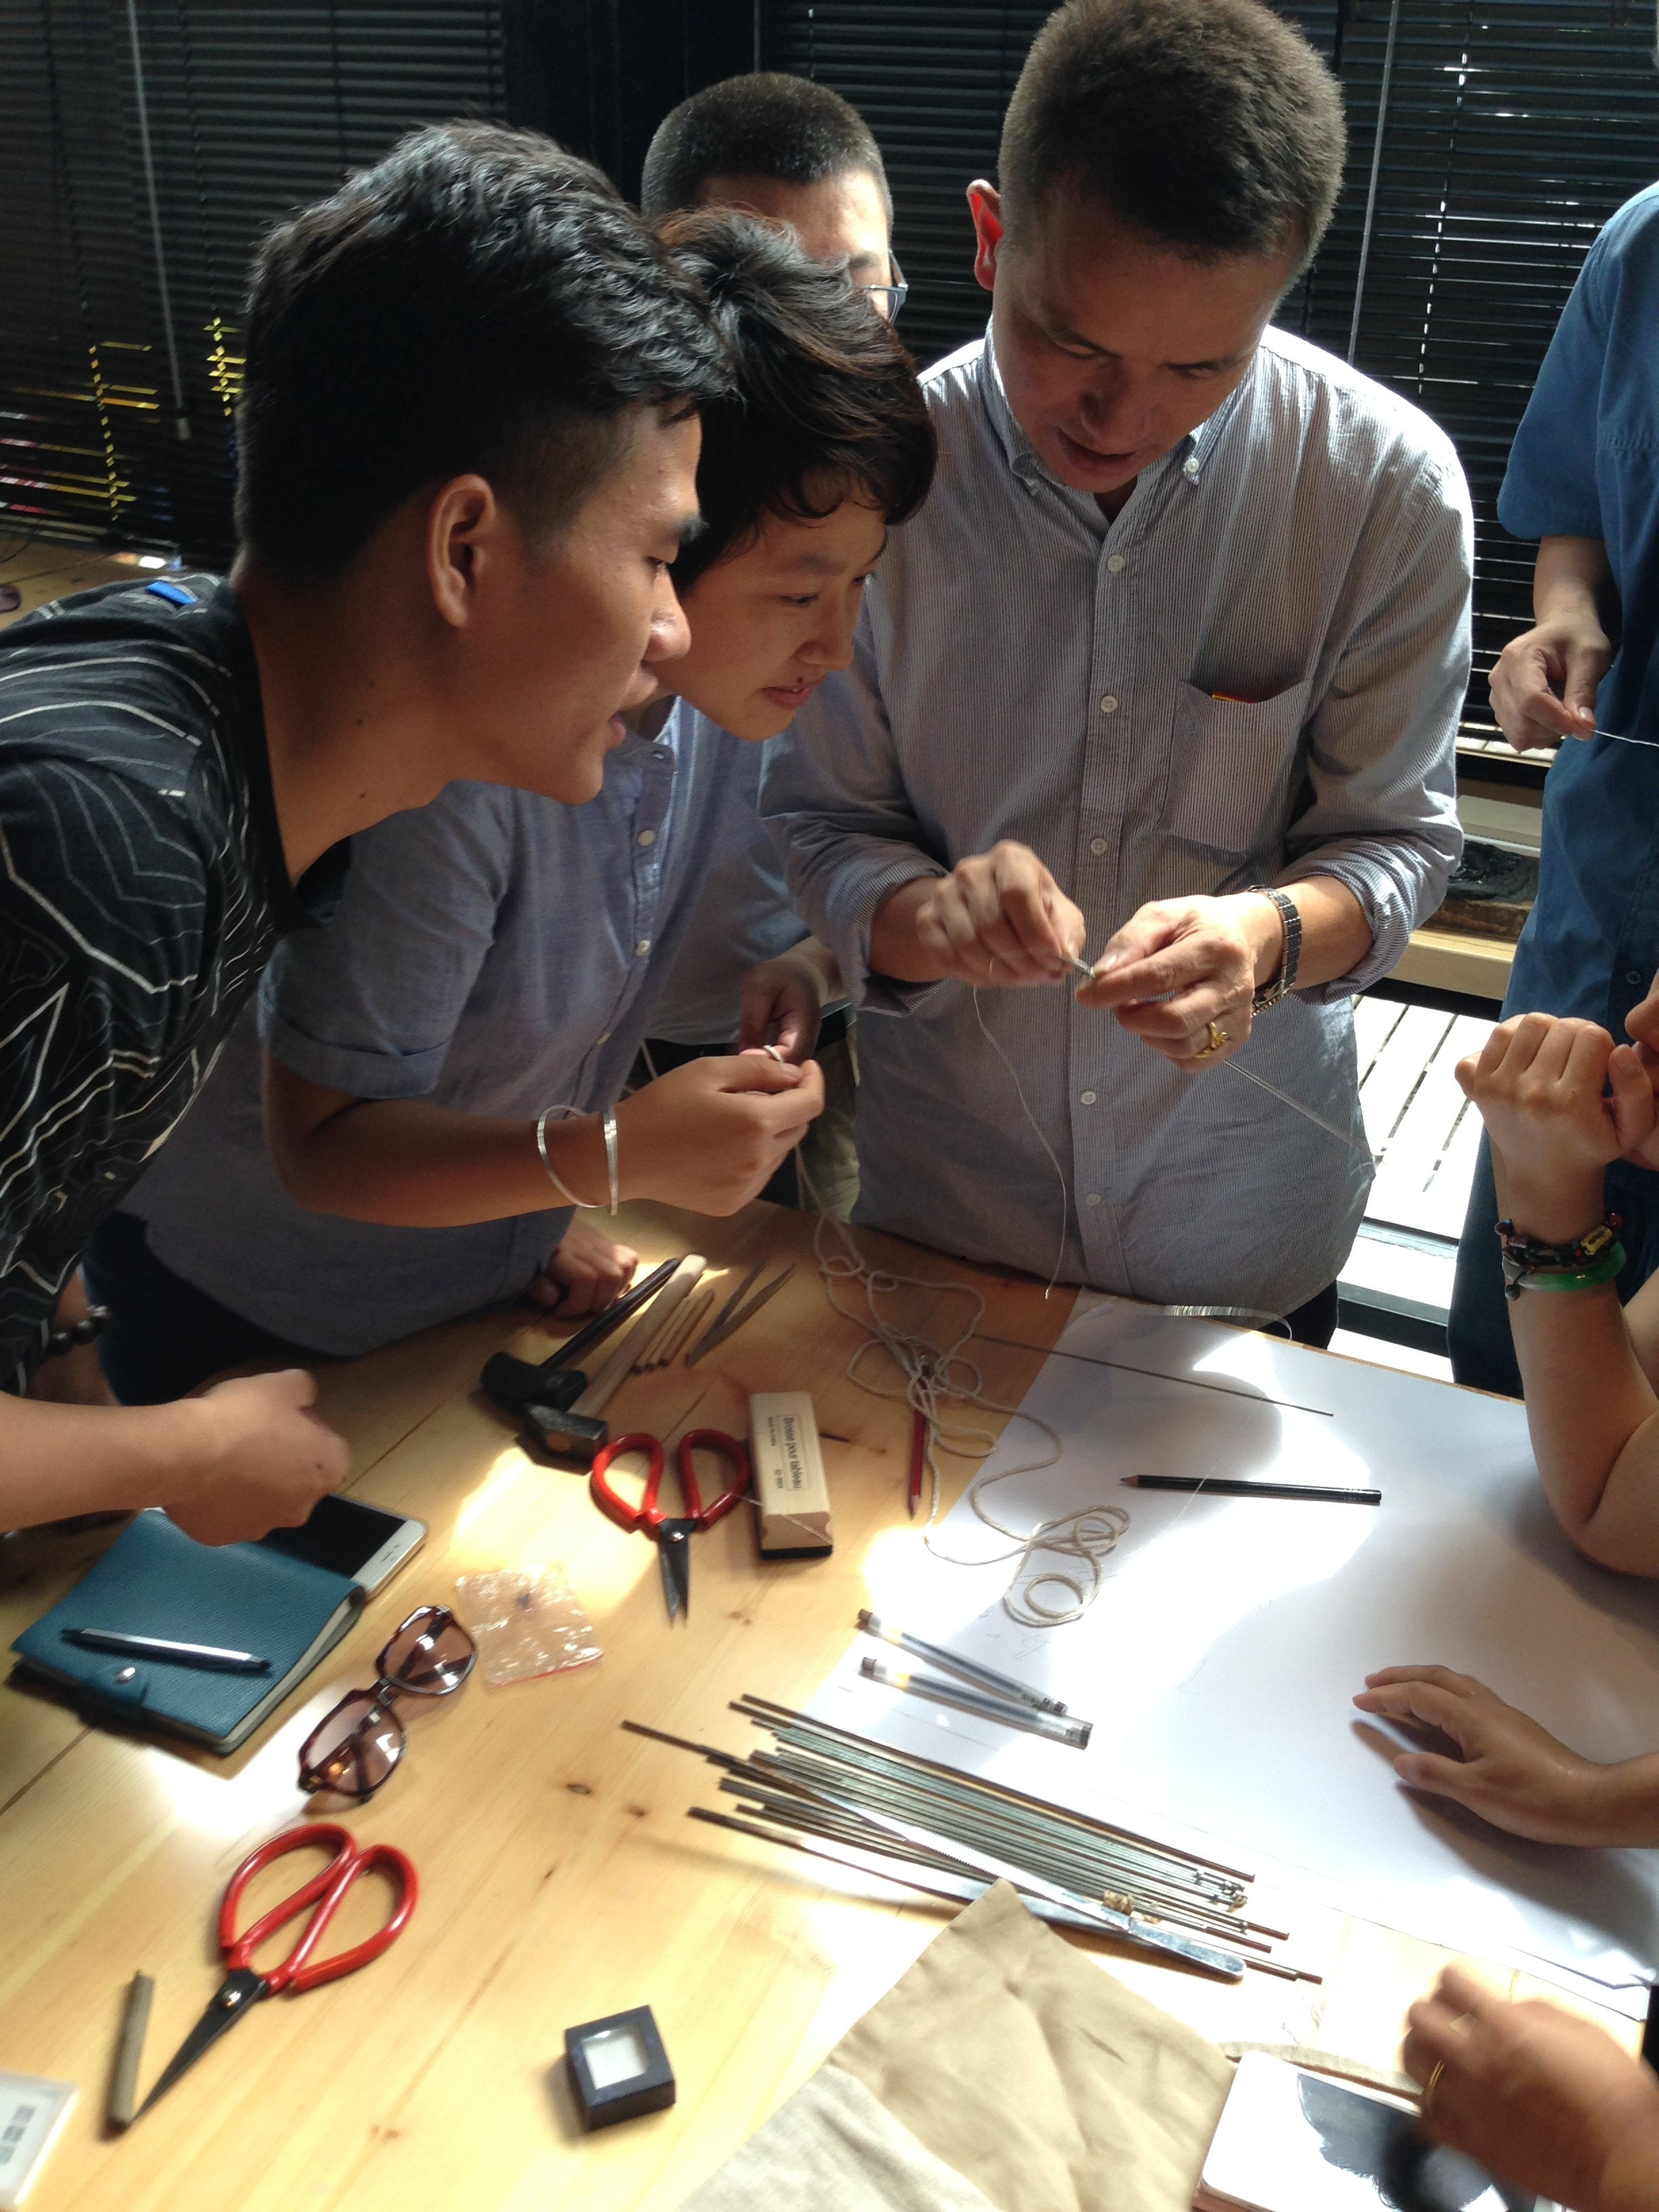 Workshop participants get in close to see the detail of Master Lie's skilled hands